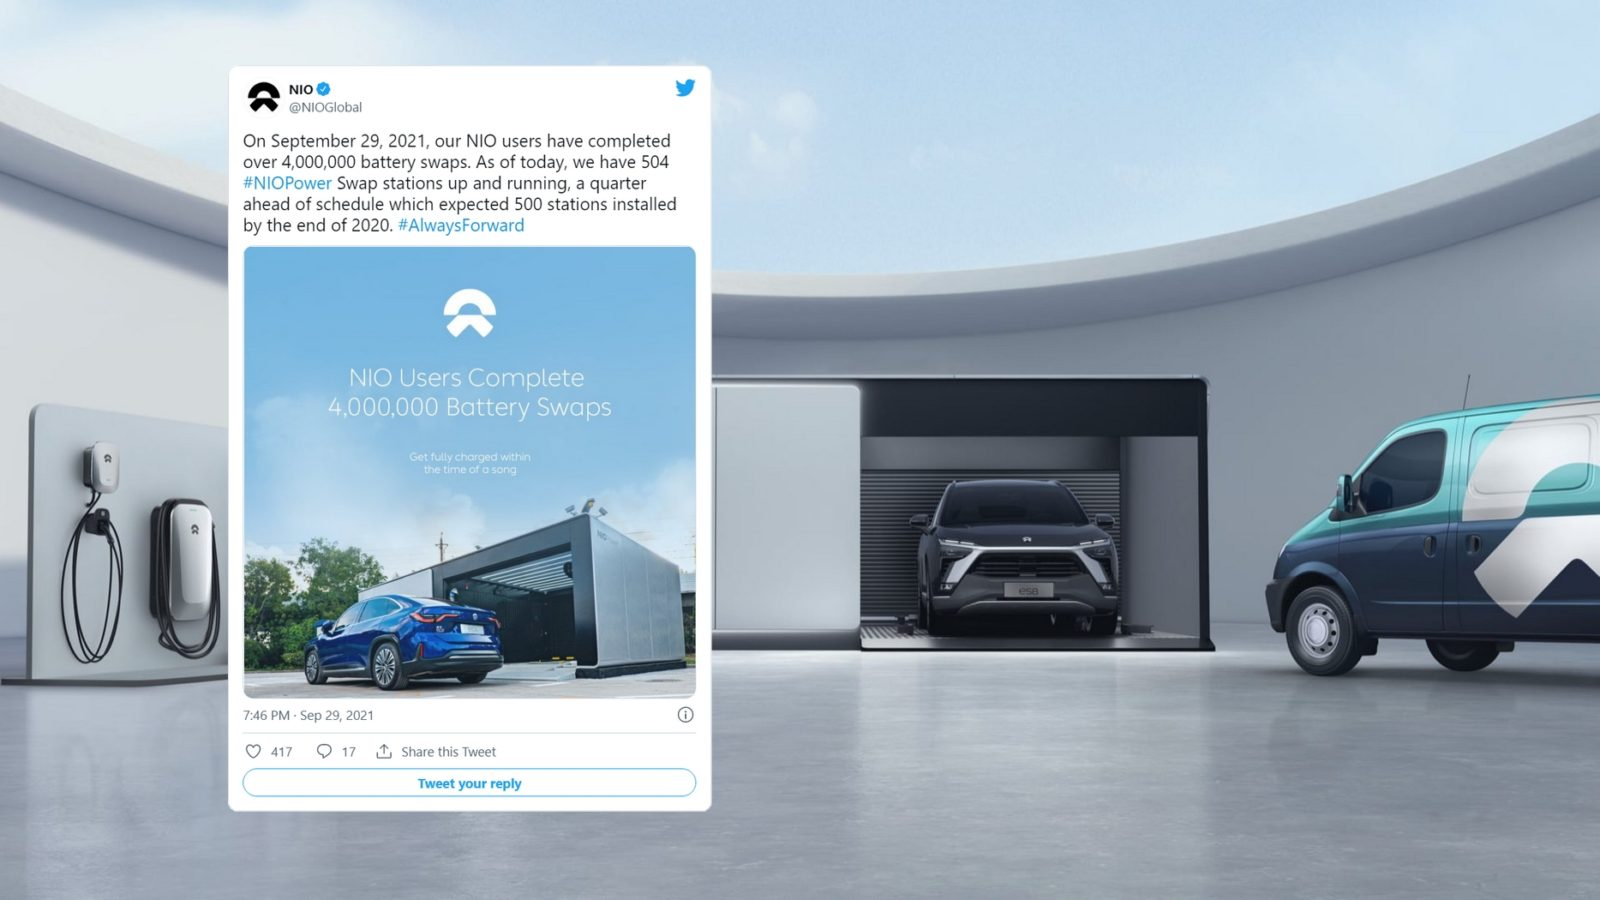 nio-reaches-4-million-battery-swaps-and-504-stations